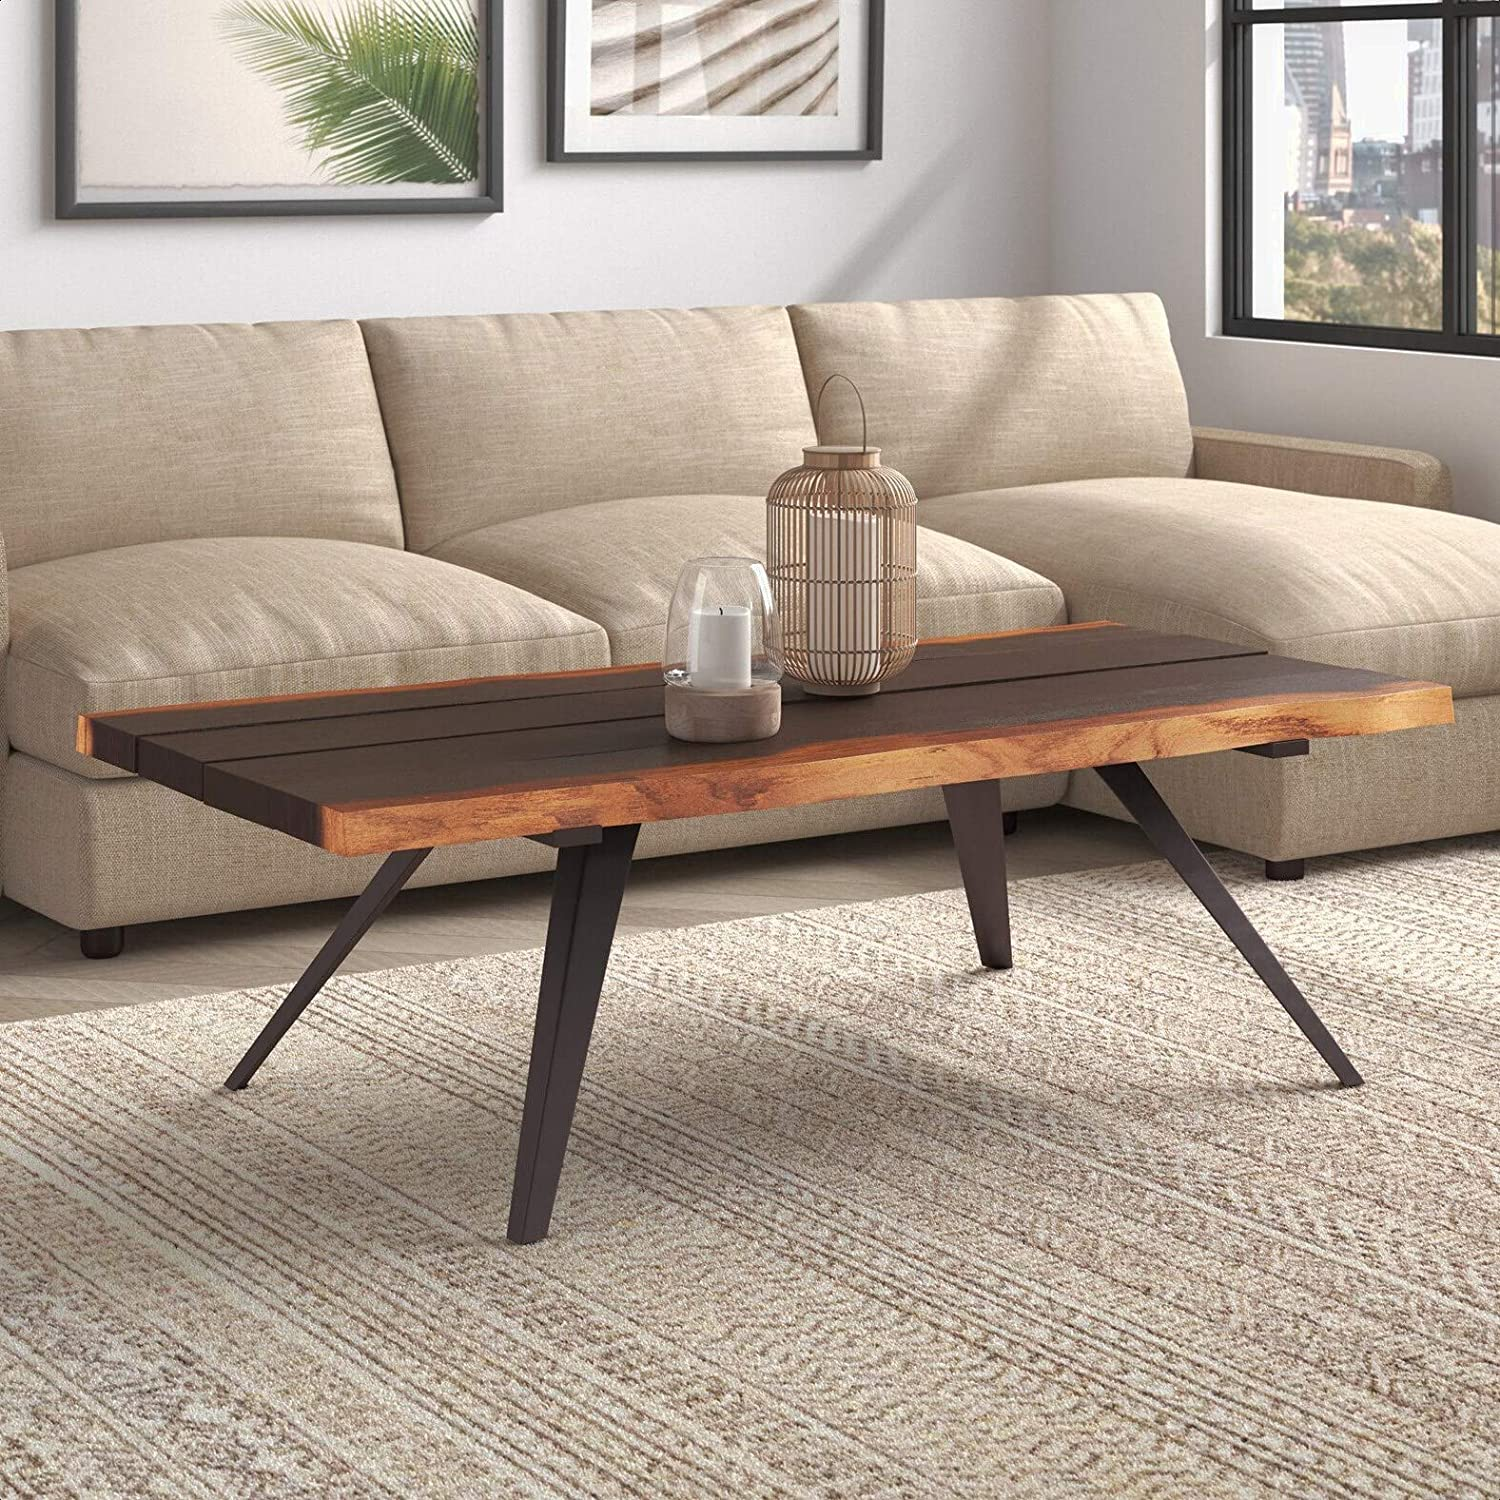 Ginsburg Coffee Ranking TOP18 Table Cast Iron Legs N Origin: Viet Long Beach Mall Country of